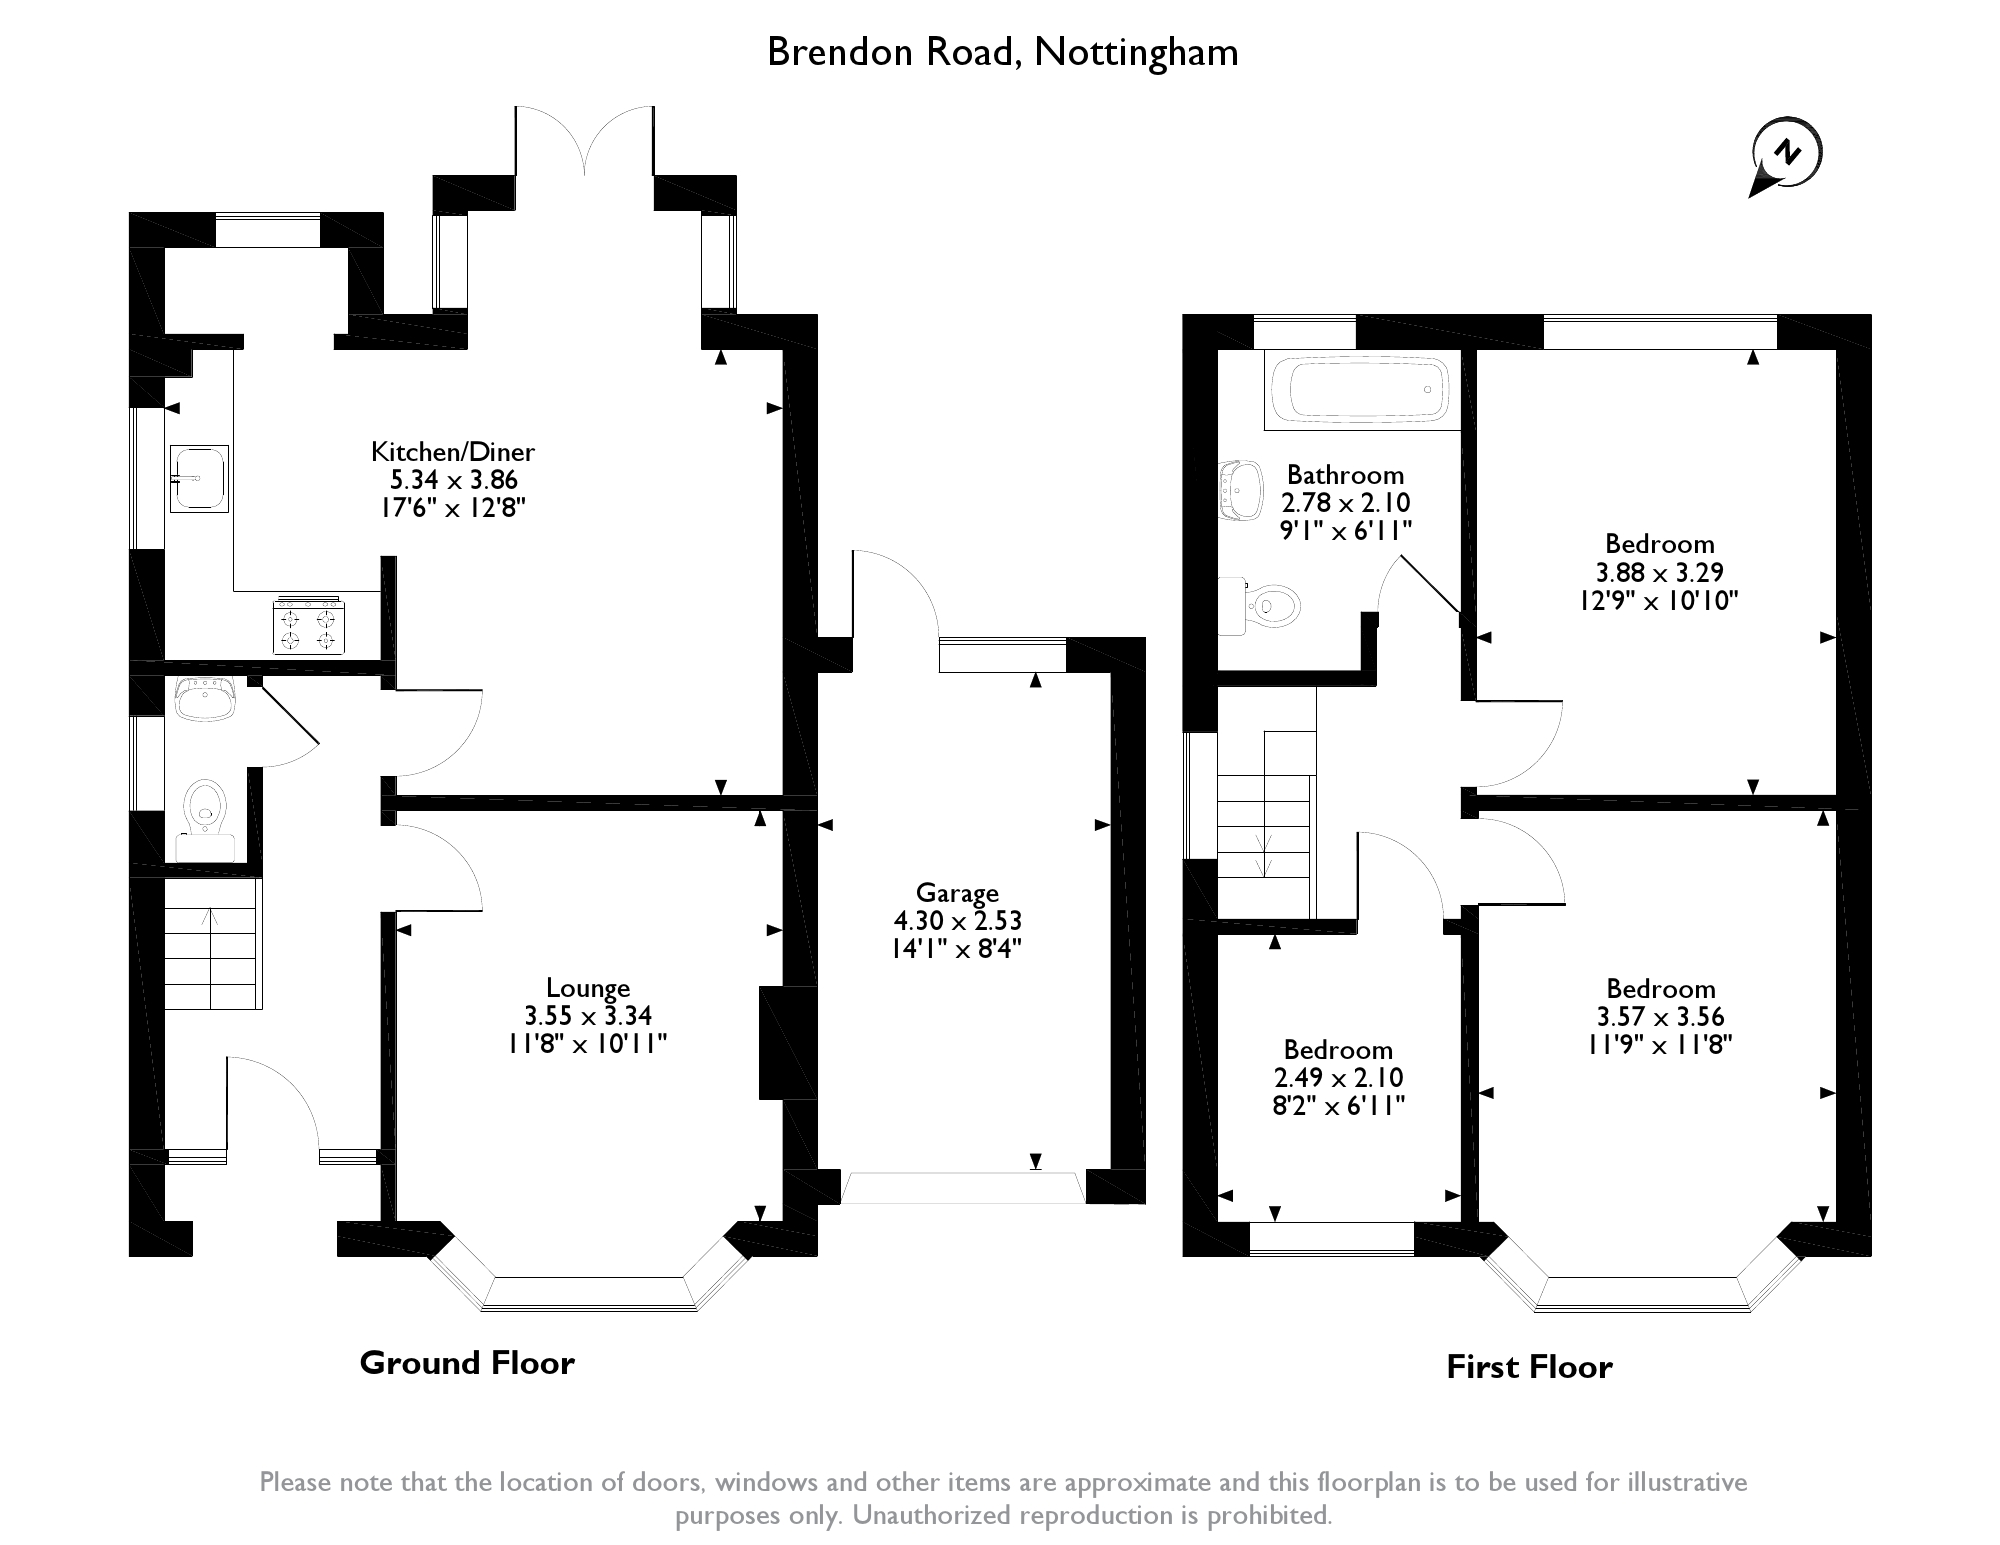 Brendon Road, Nottingham, NG8 floor plan